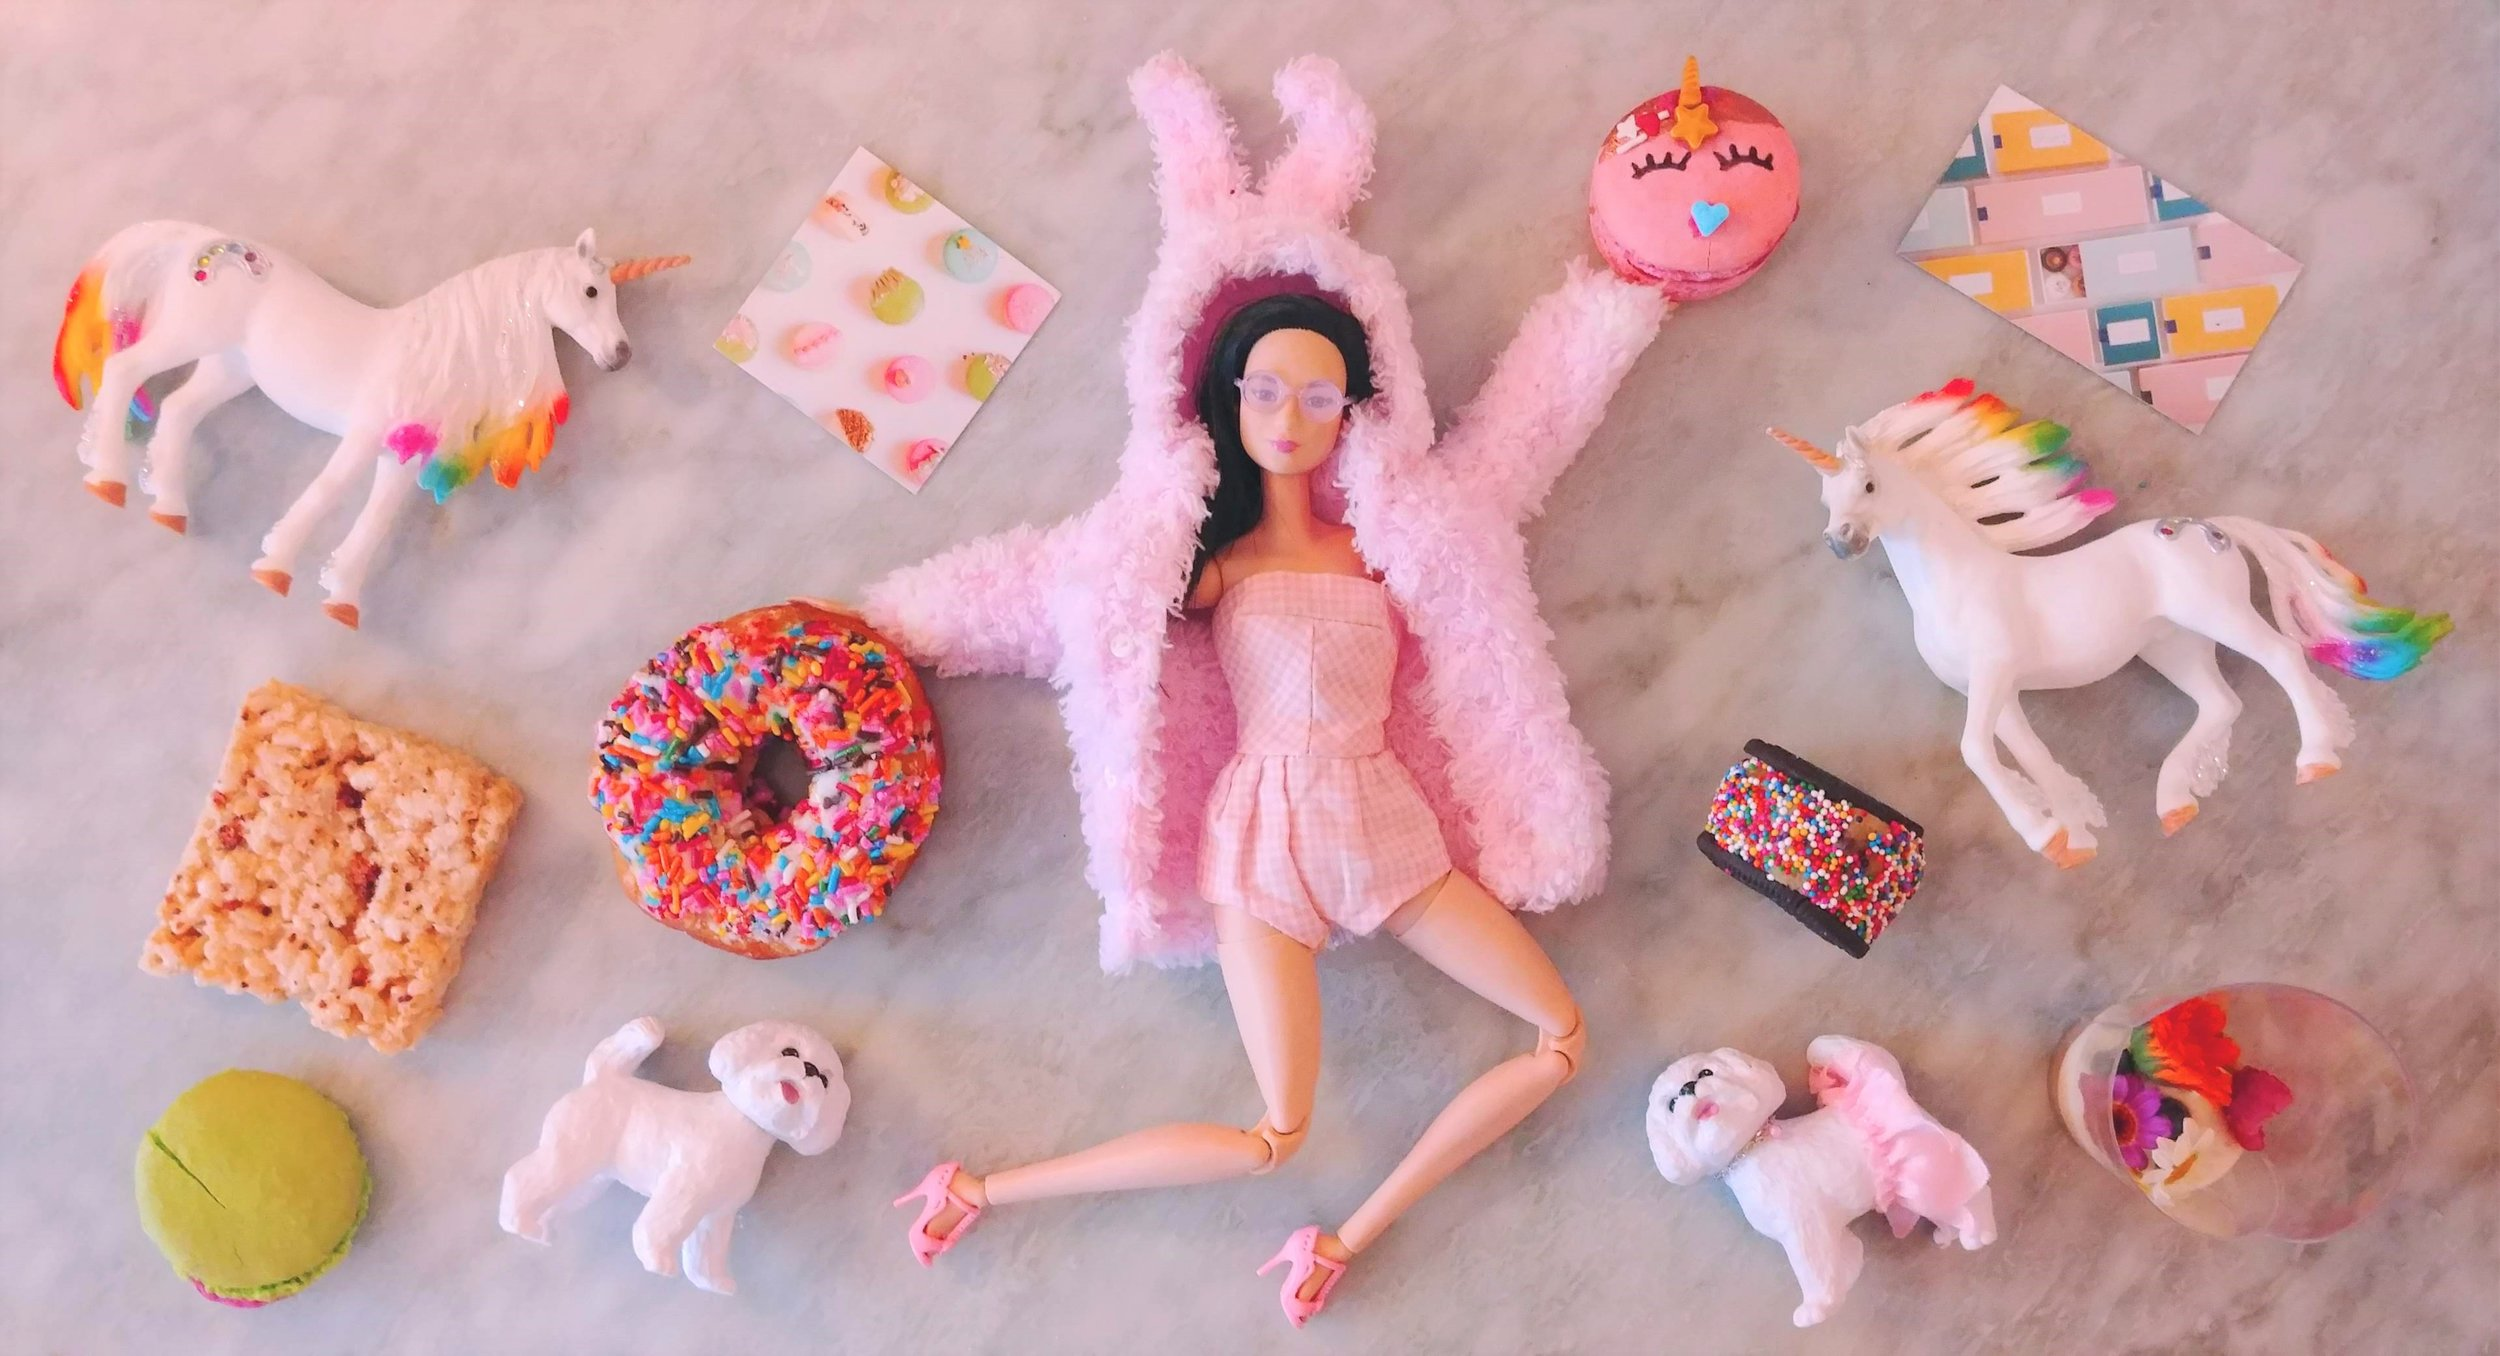 Foodie Barbie posing with various desserts from the Sweet Spot Fest dessert festival